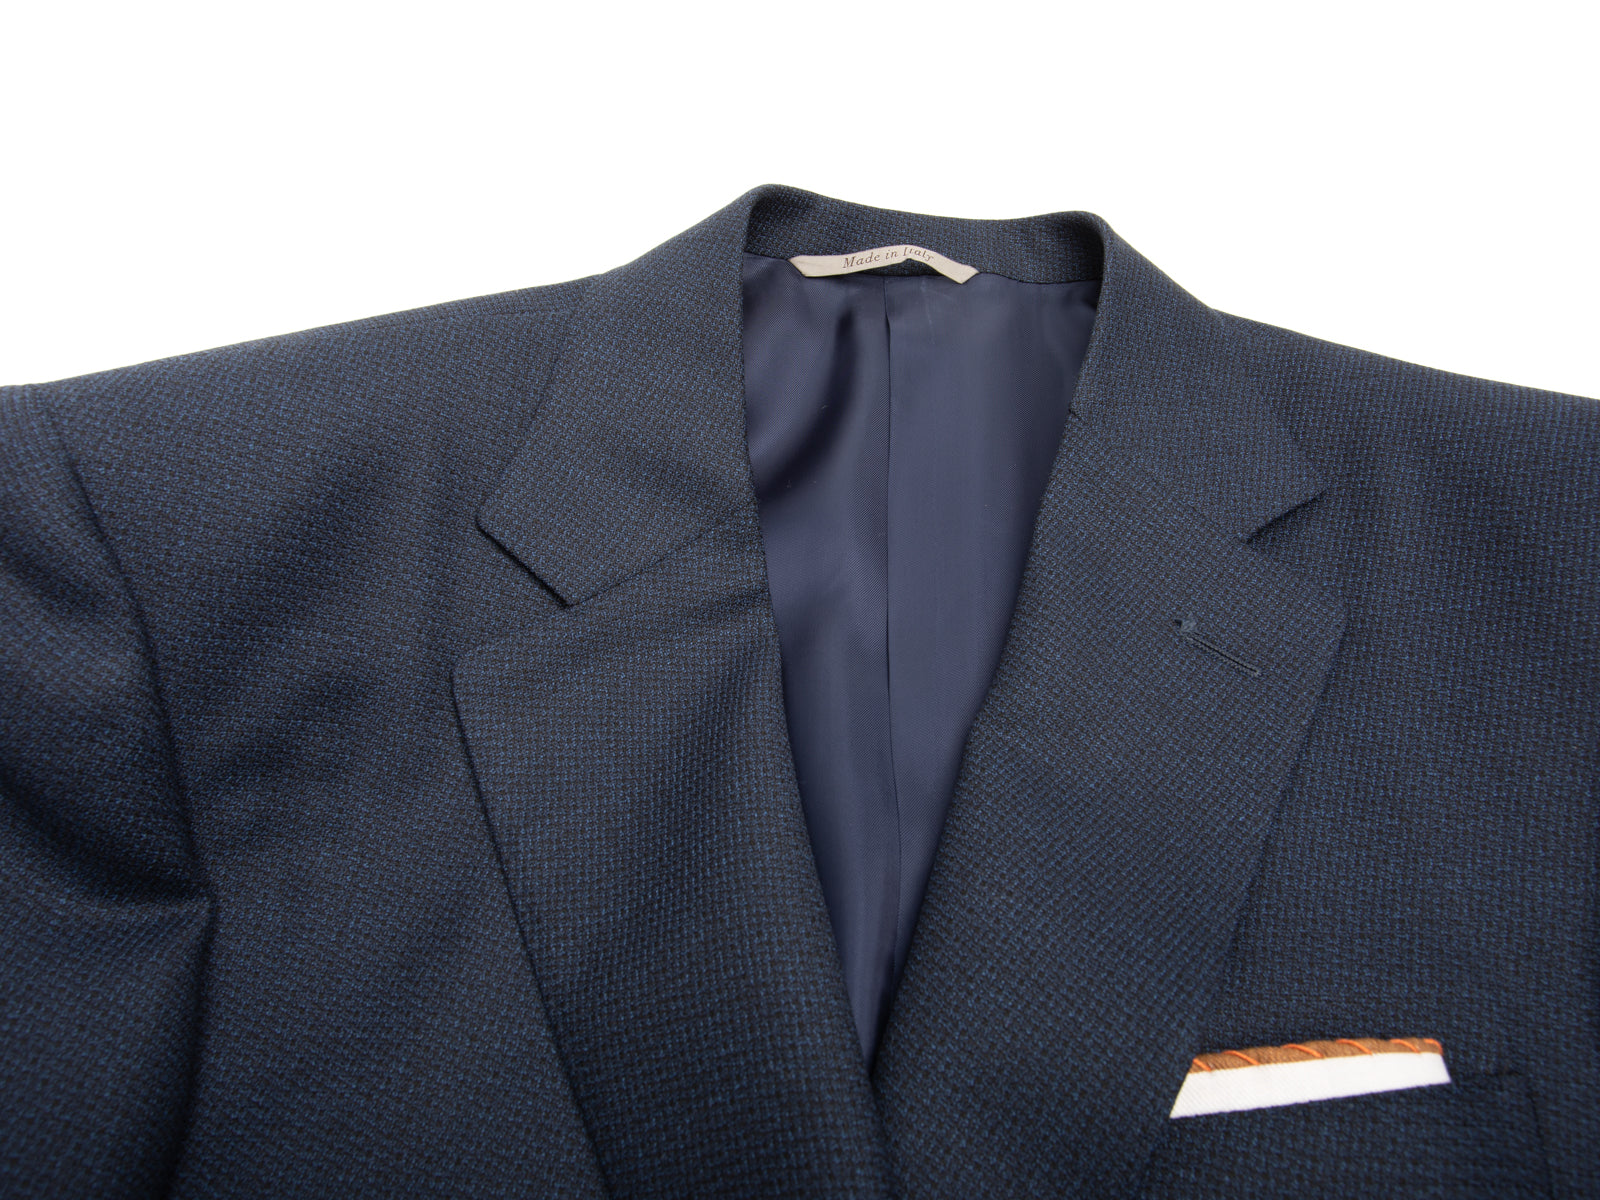 Indigo Neat Suiting